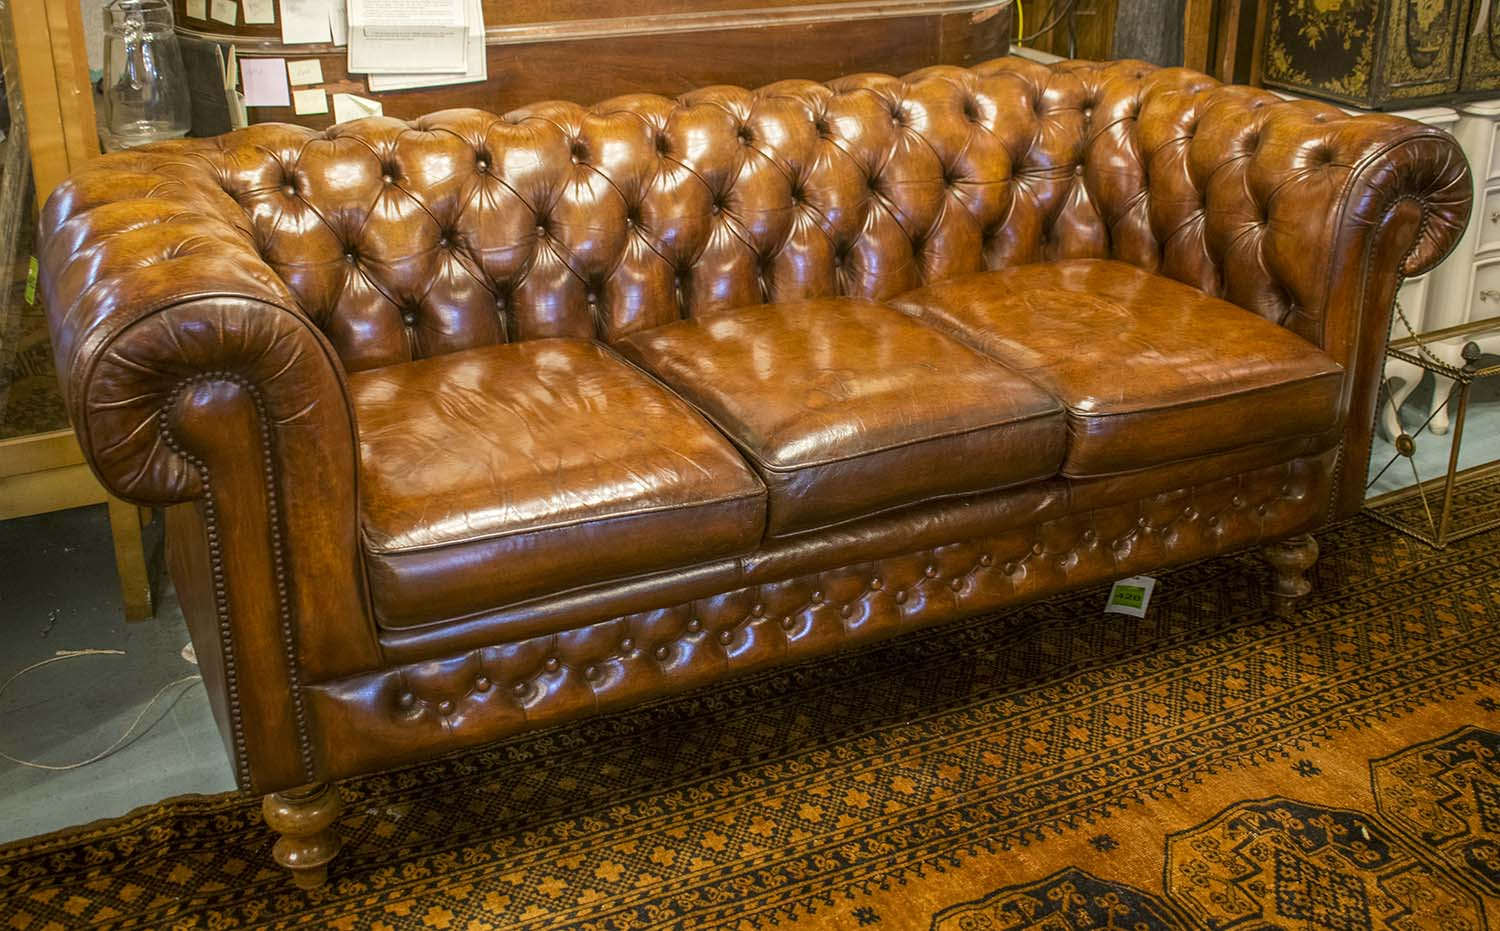 Vintage Chesterfield Sofa, Traditional Design Deep Intended For Vintage Chesterfield Sofas (View 7 of 15)